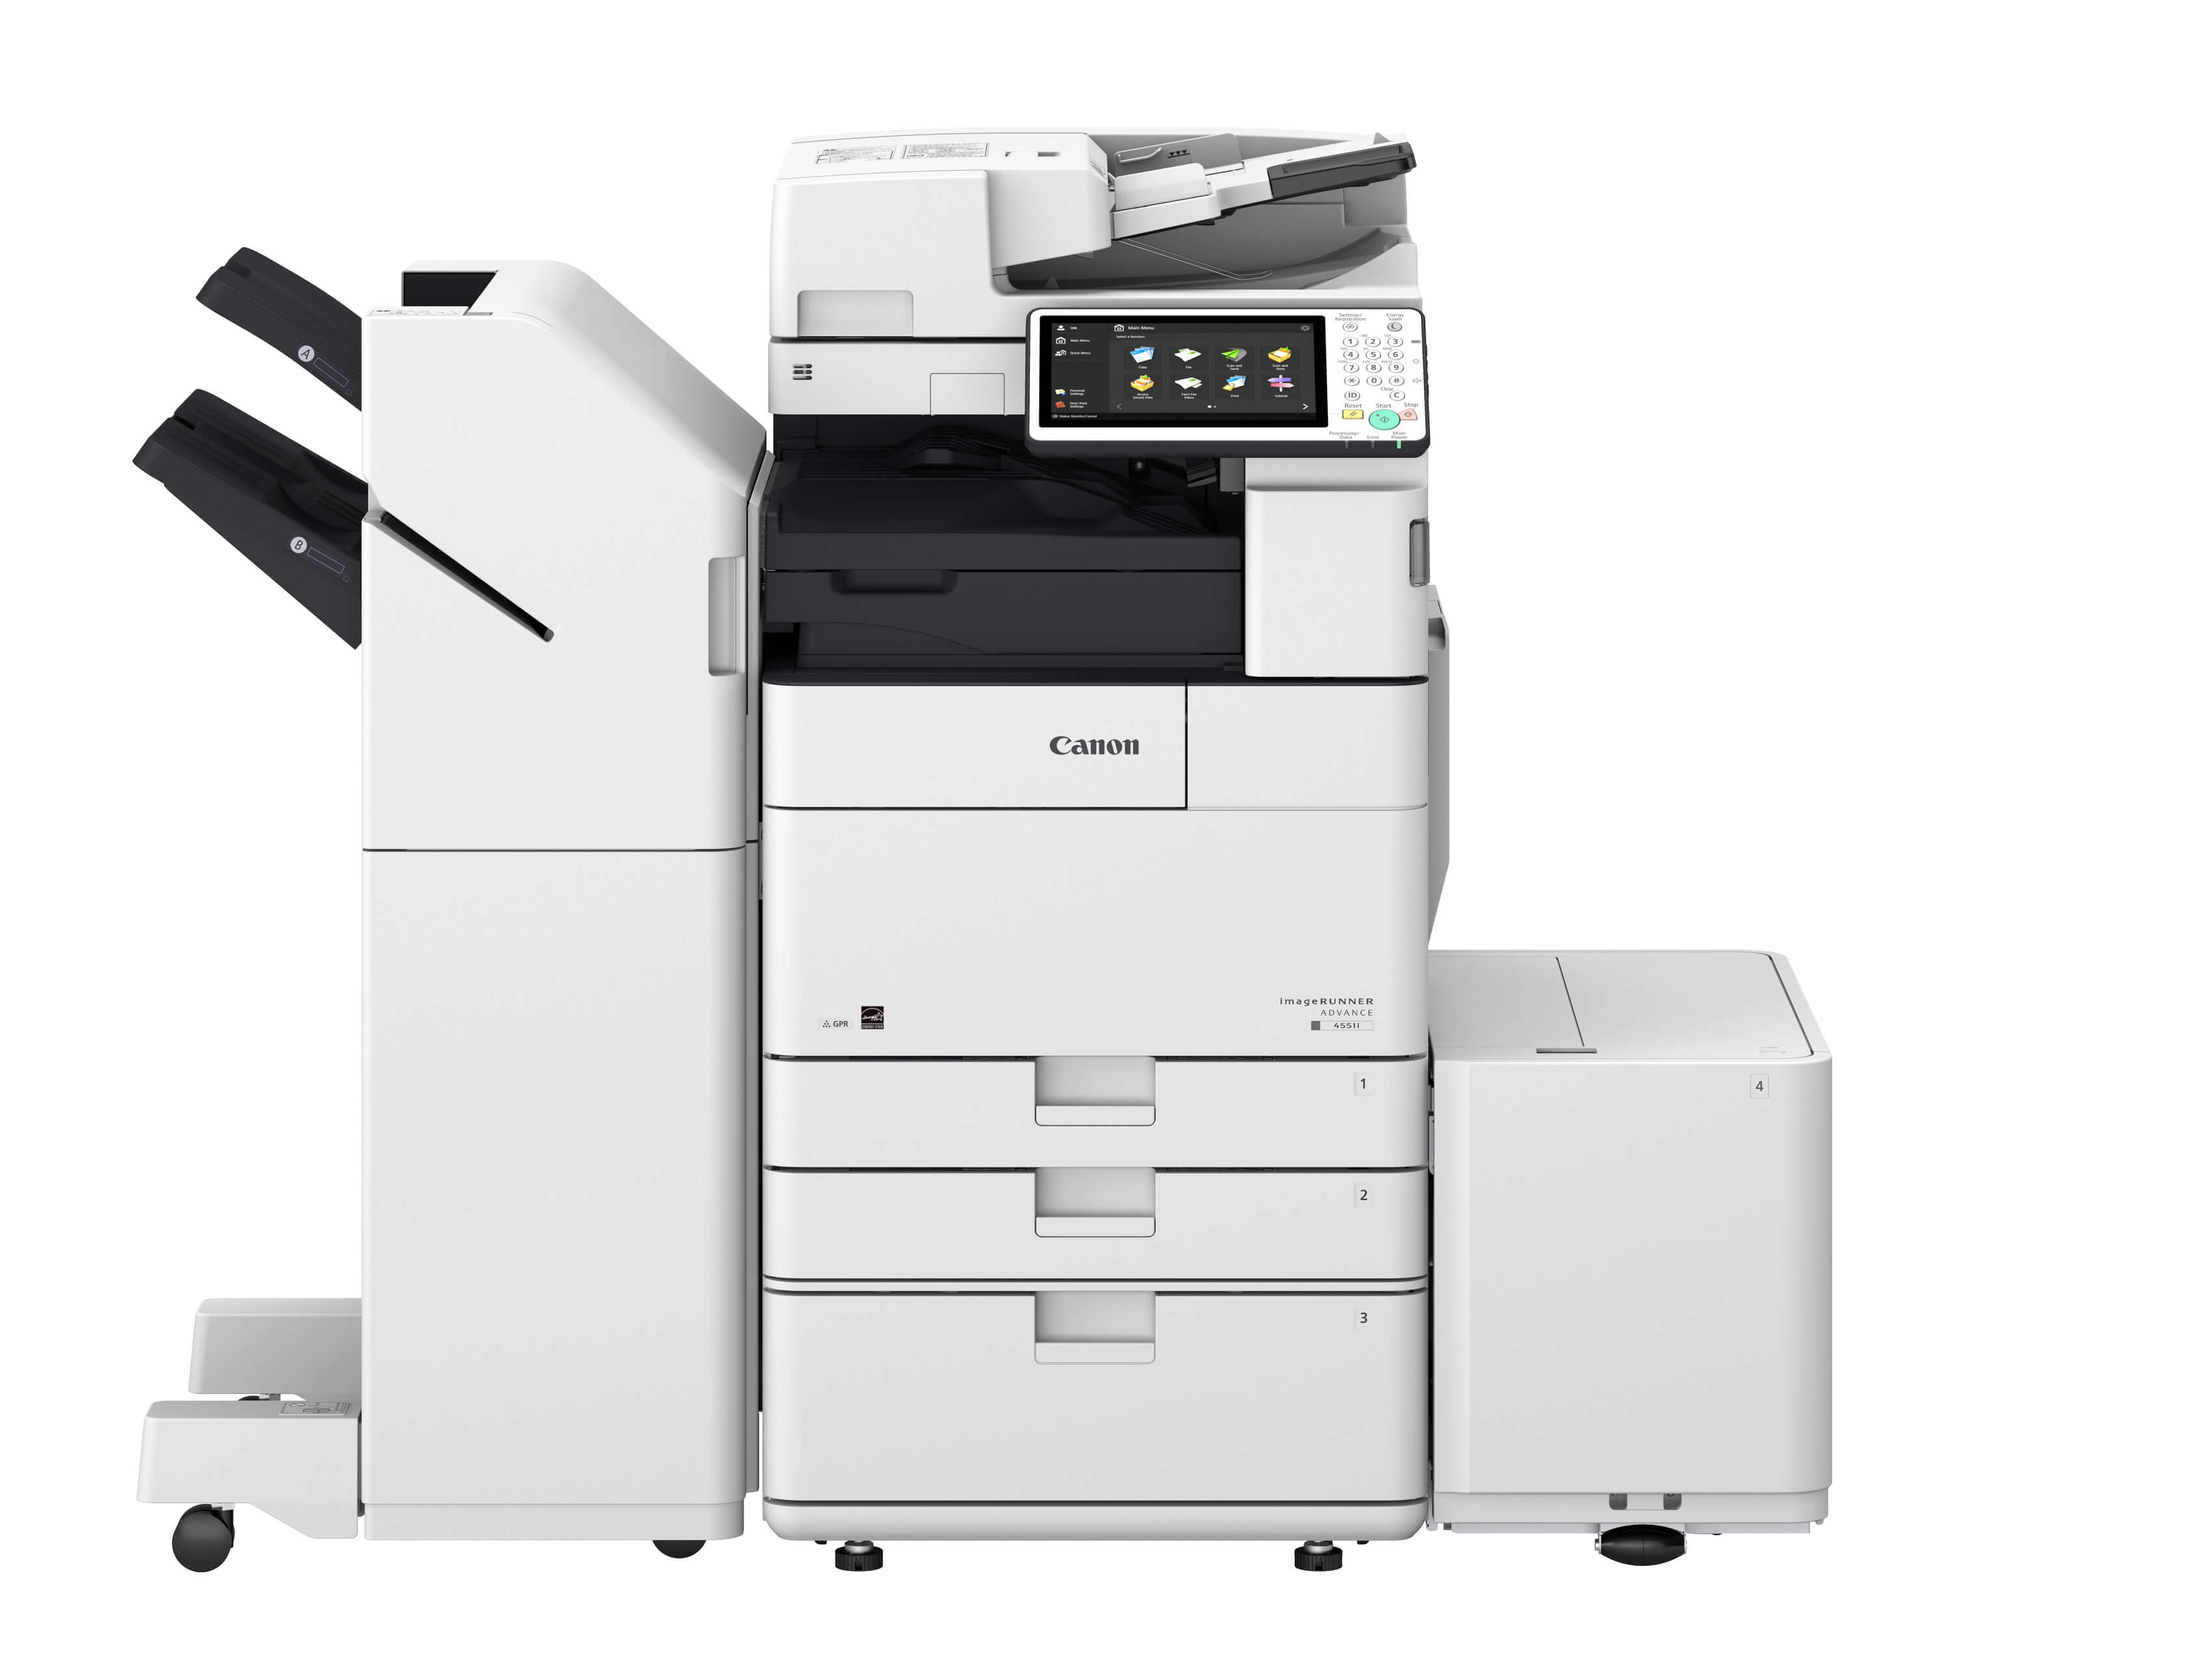 ImageRUNNER ADVANCE 4545i